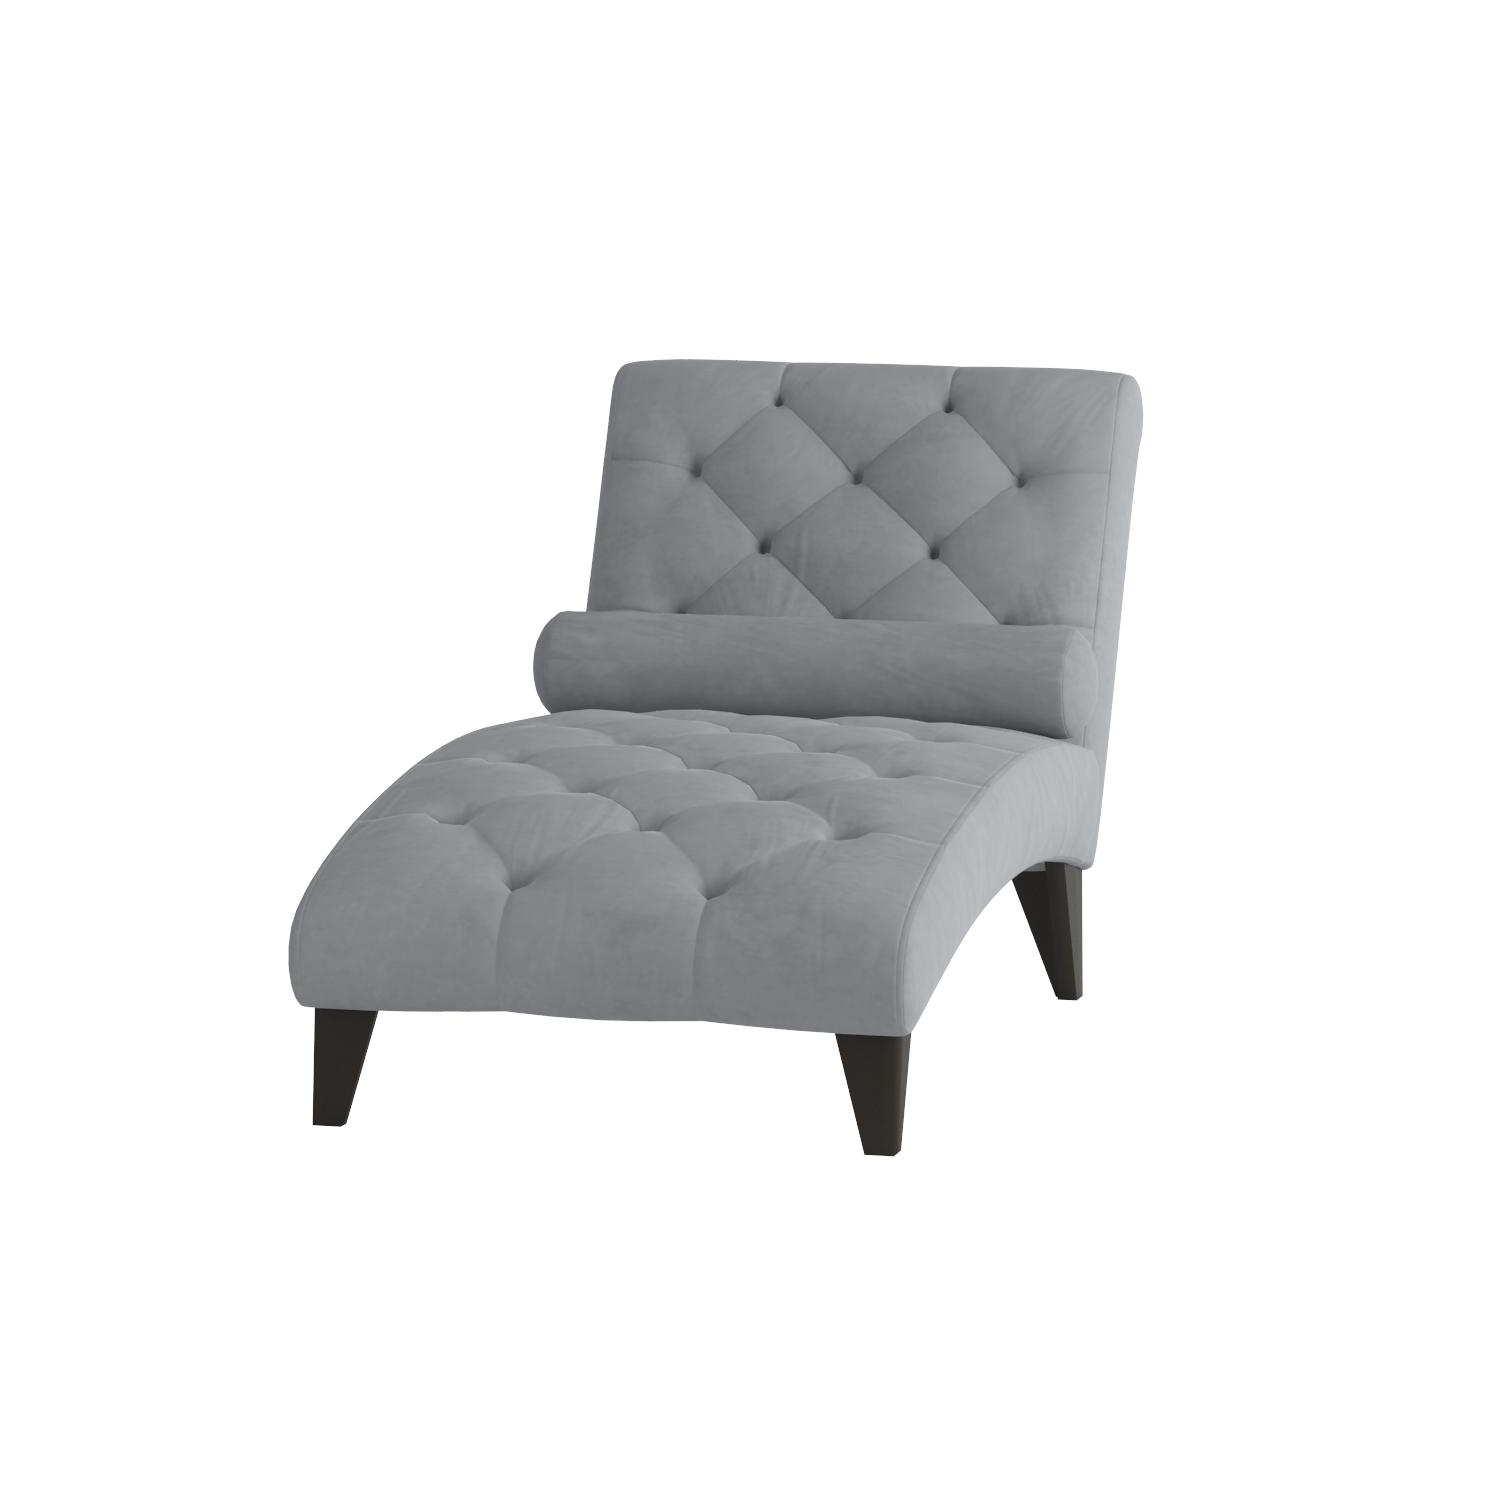 threshold height trim gray magnussen products transitional weathered item home bellamydining chair width dining bellamy side